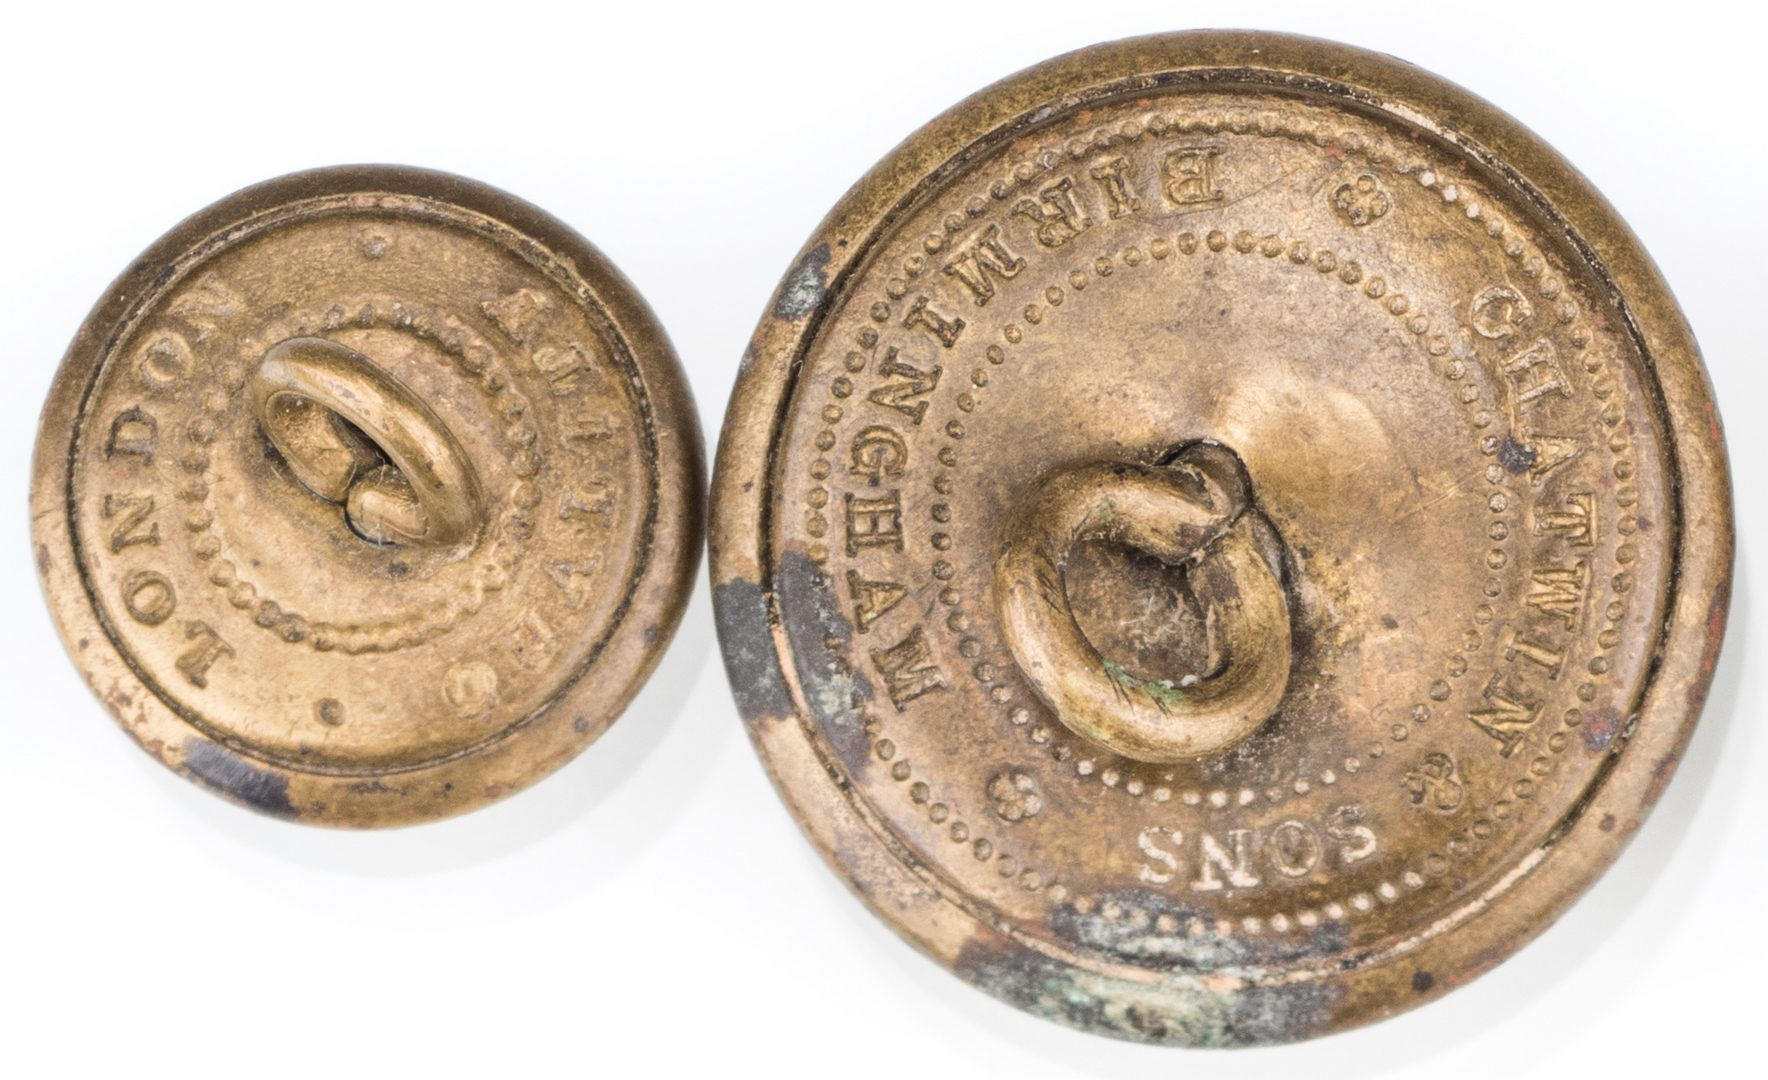 Lot 204: 4 Rare Confederate Uniform Buttons, Chatwin & Sons, Group #1